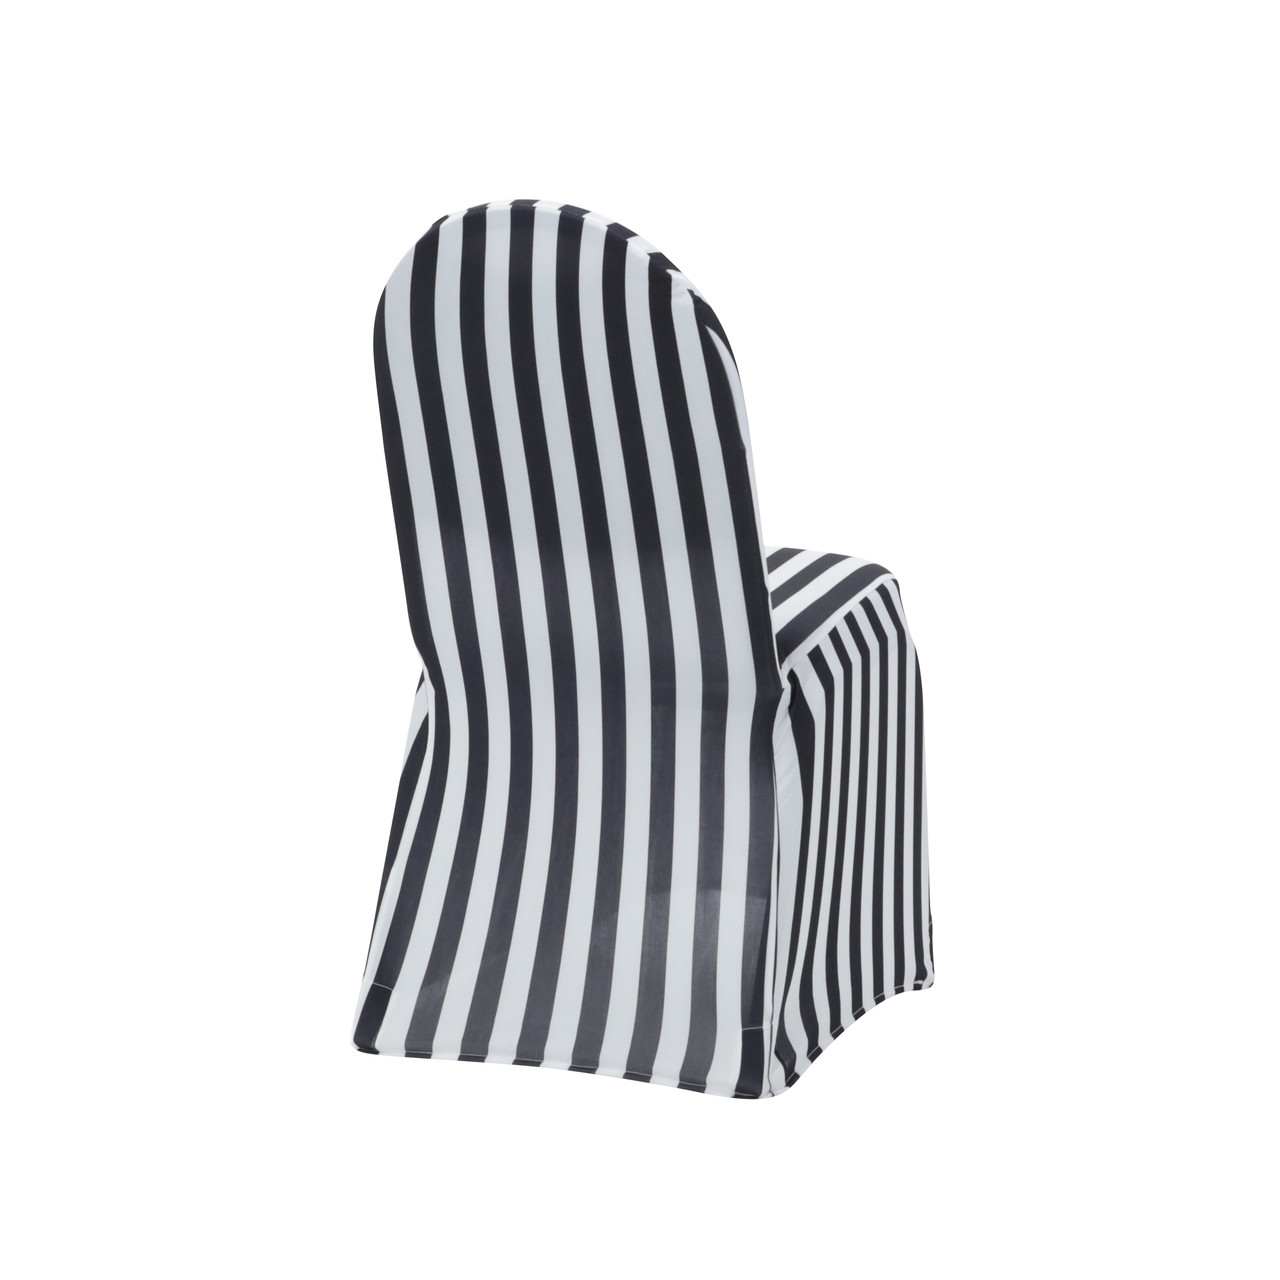 your chair covers inc reviews stability ball for classrooms stretch spandex banquet cover black and white